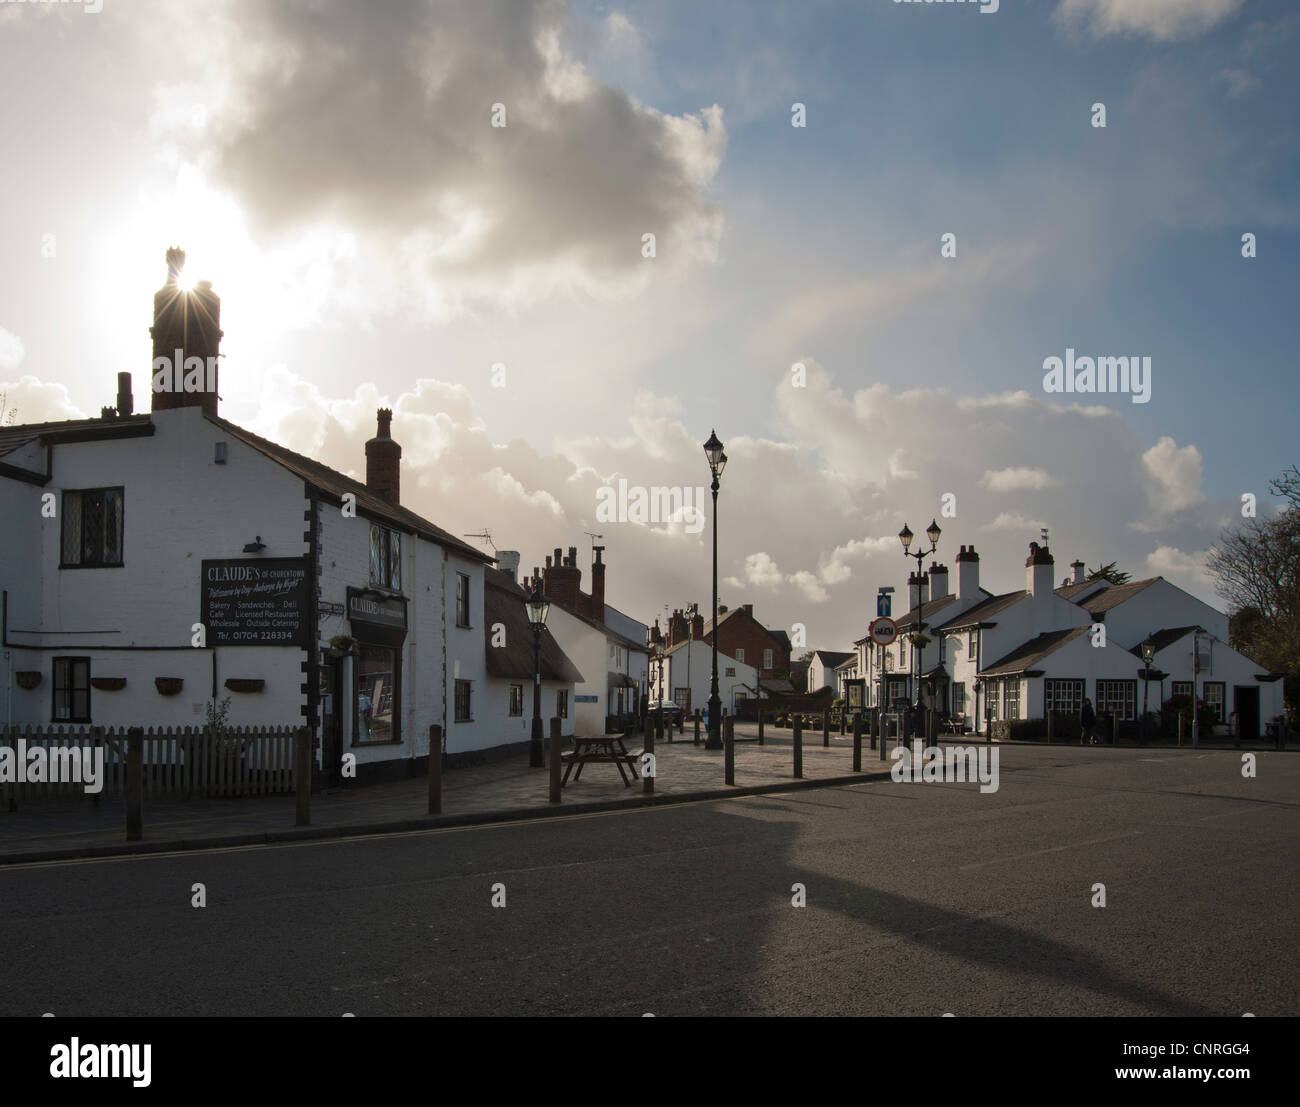 Traditional English village street with pub. - Stock Image